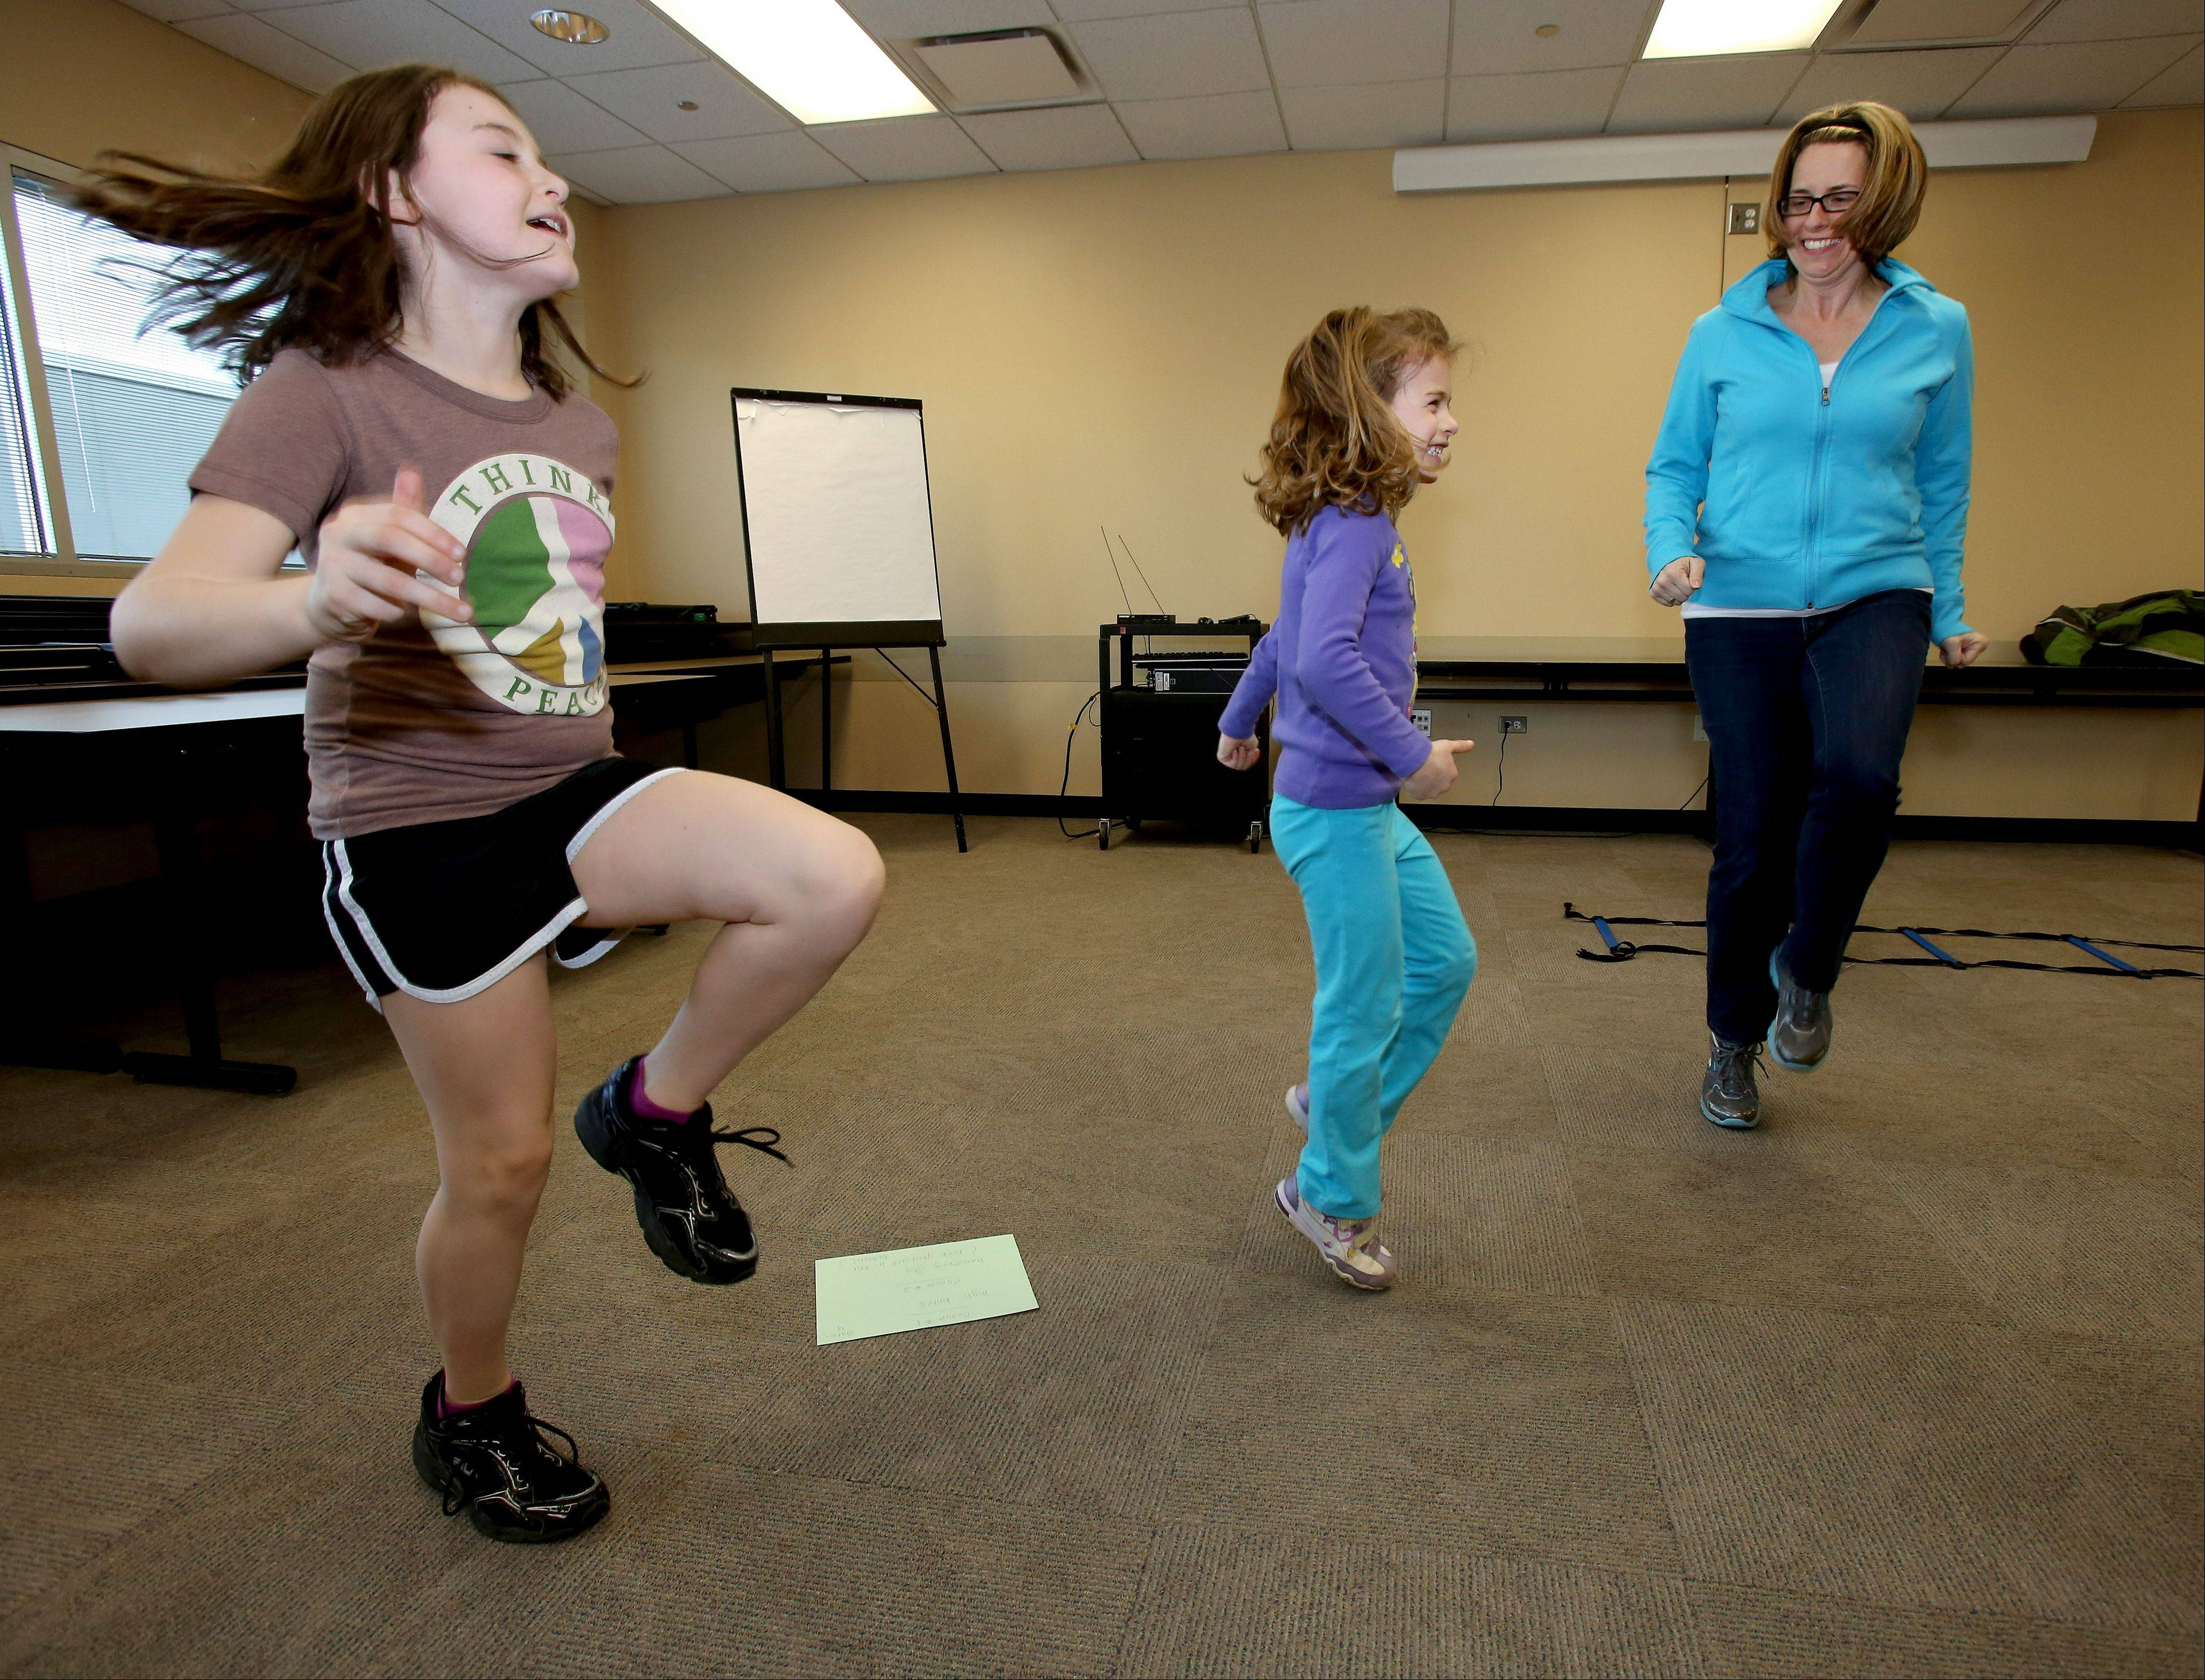 Maddie Maci, 8, and her sister Mackenzie, 4, do high knee lifts with their mother, Molly Maci of Downers Grove, as they participate in the ProActive Kids program at the Advocate Good Samaritan Health and Wellness Center in Downers Grove.